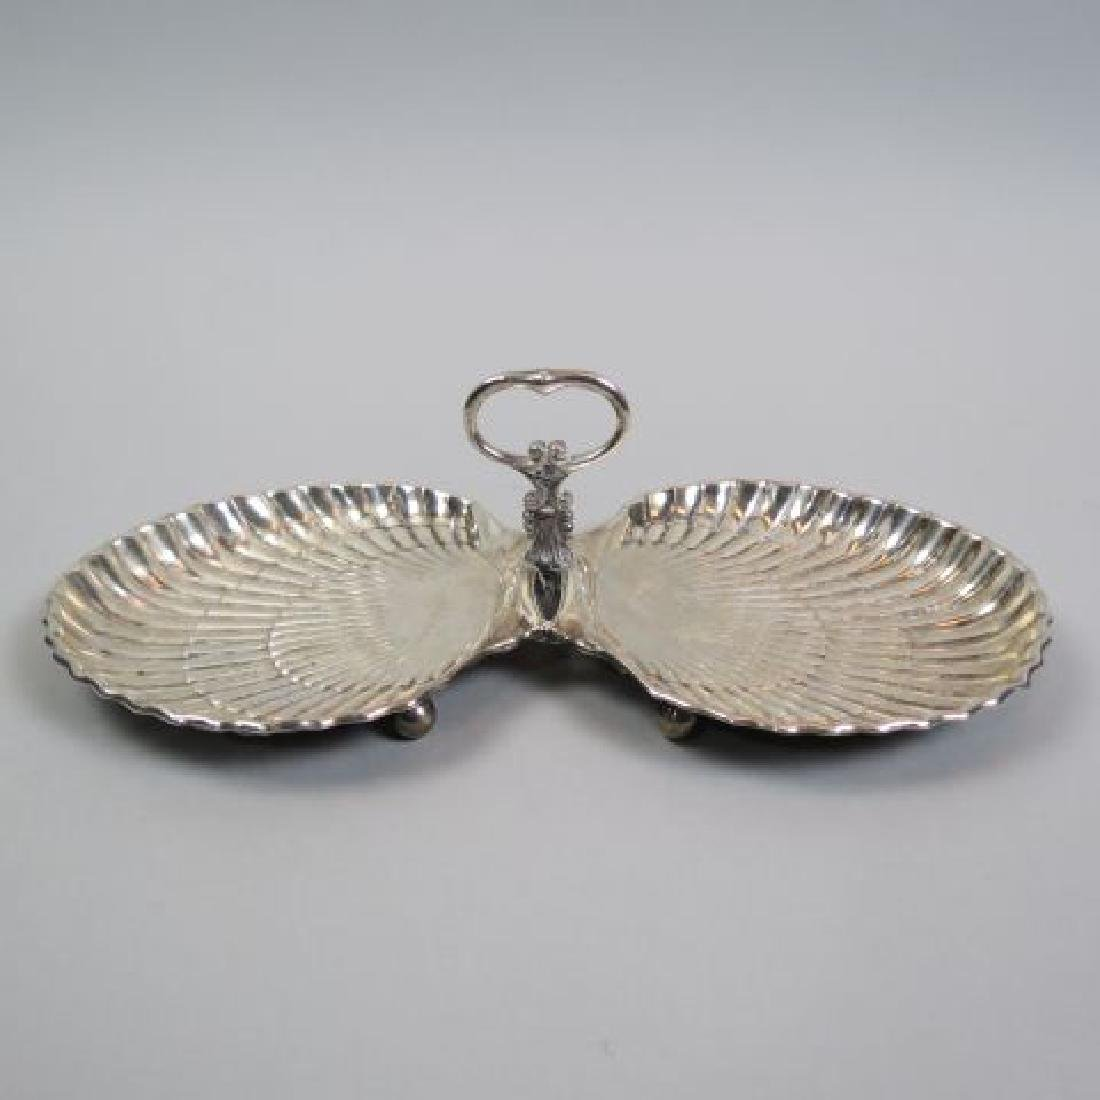 Gorham Sterling Silver Double Shell Serving Dish,